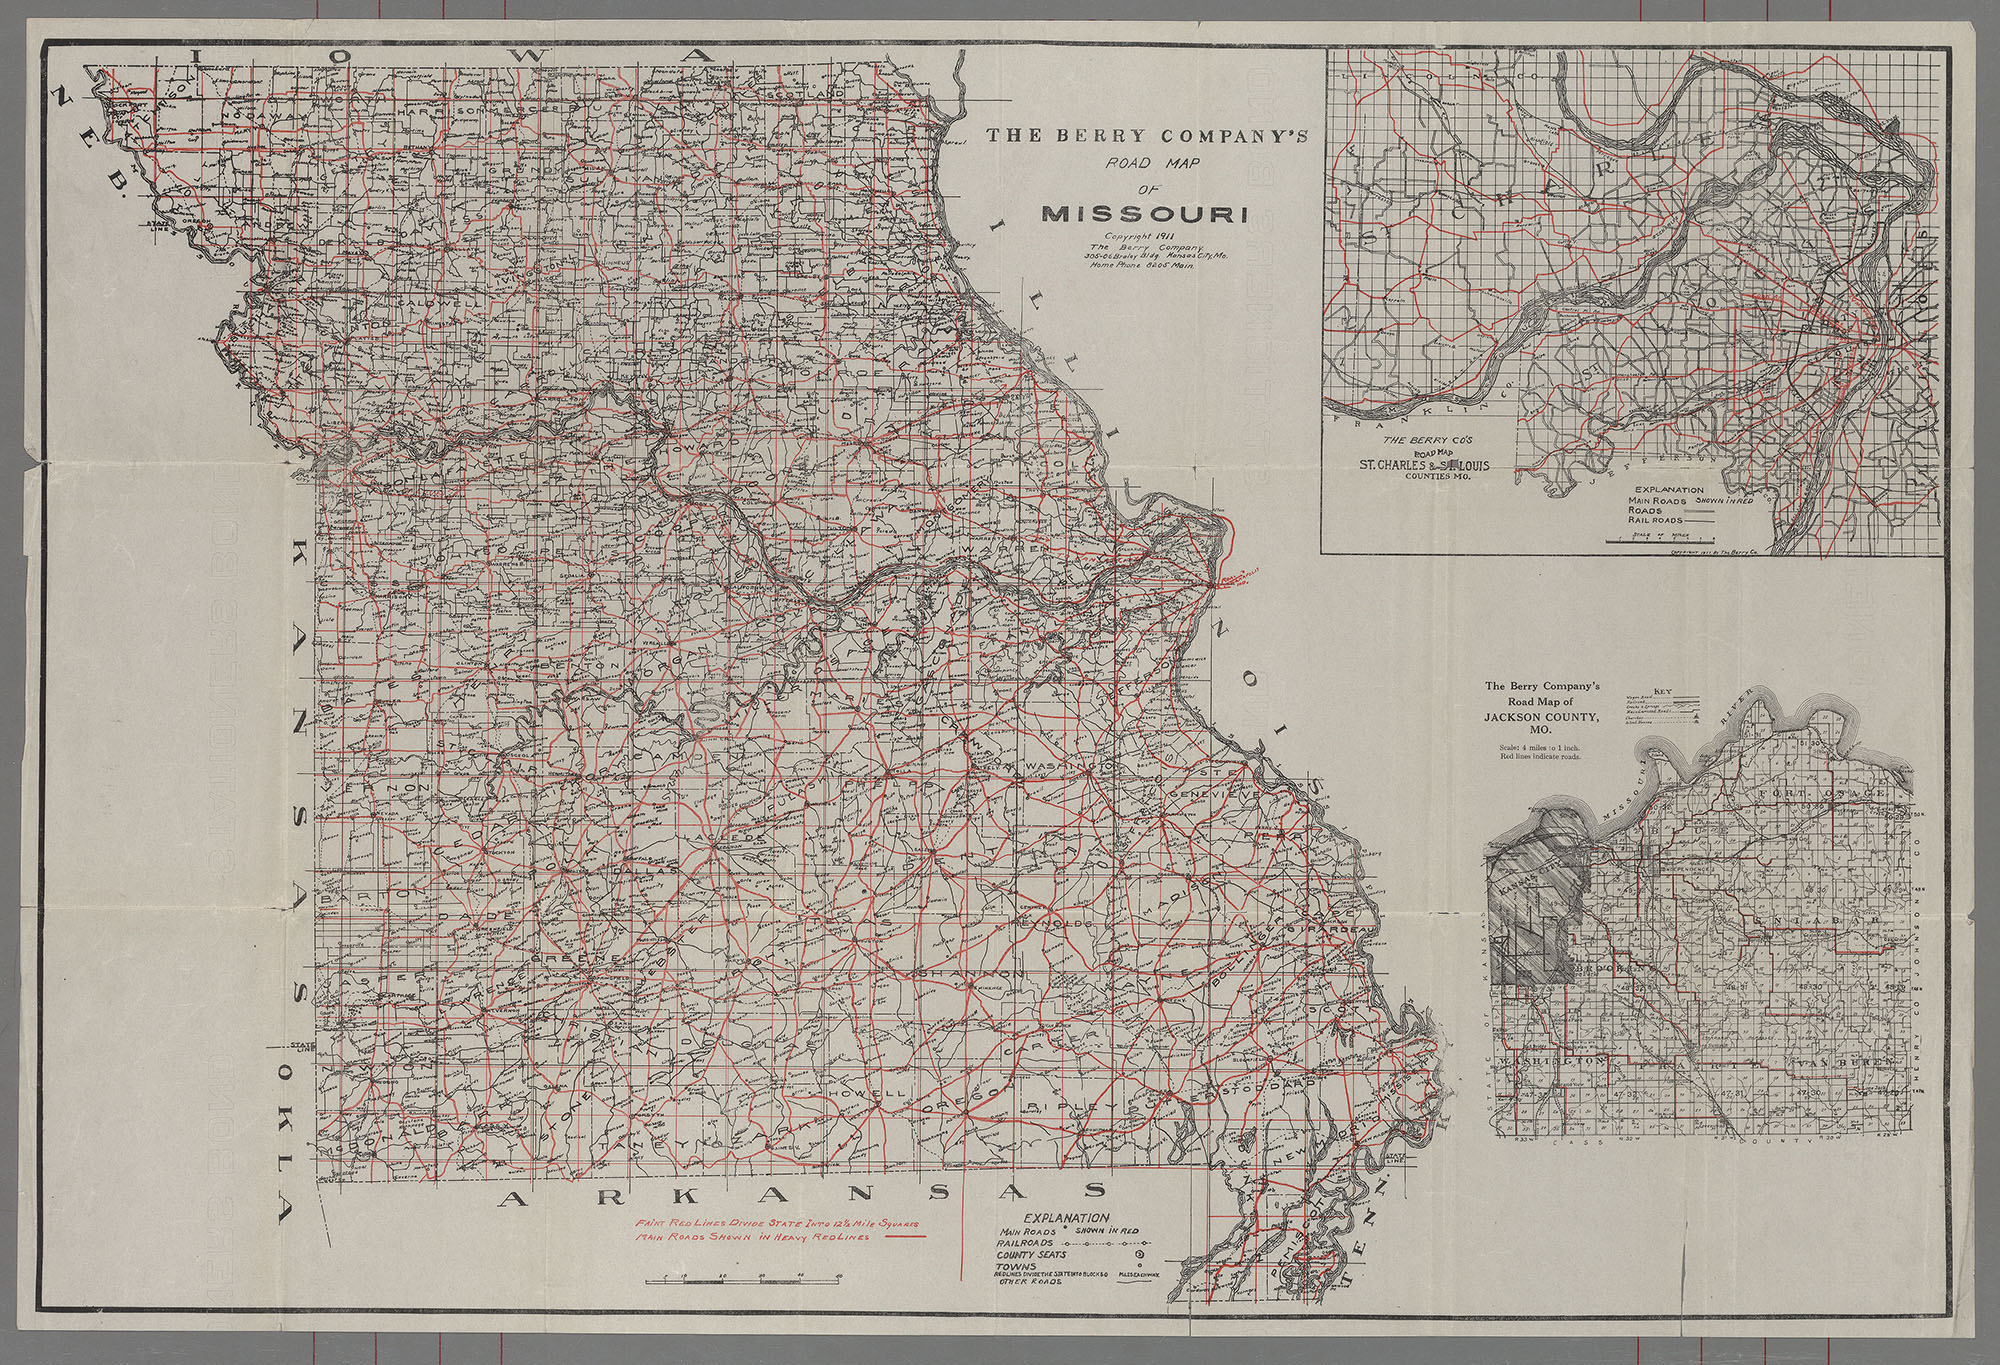 St Louis Public Library Maps Of Missouri - Missouri road map